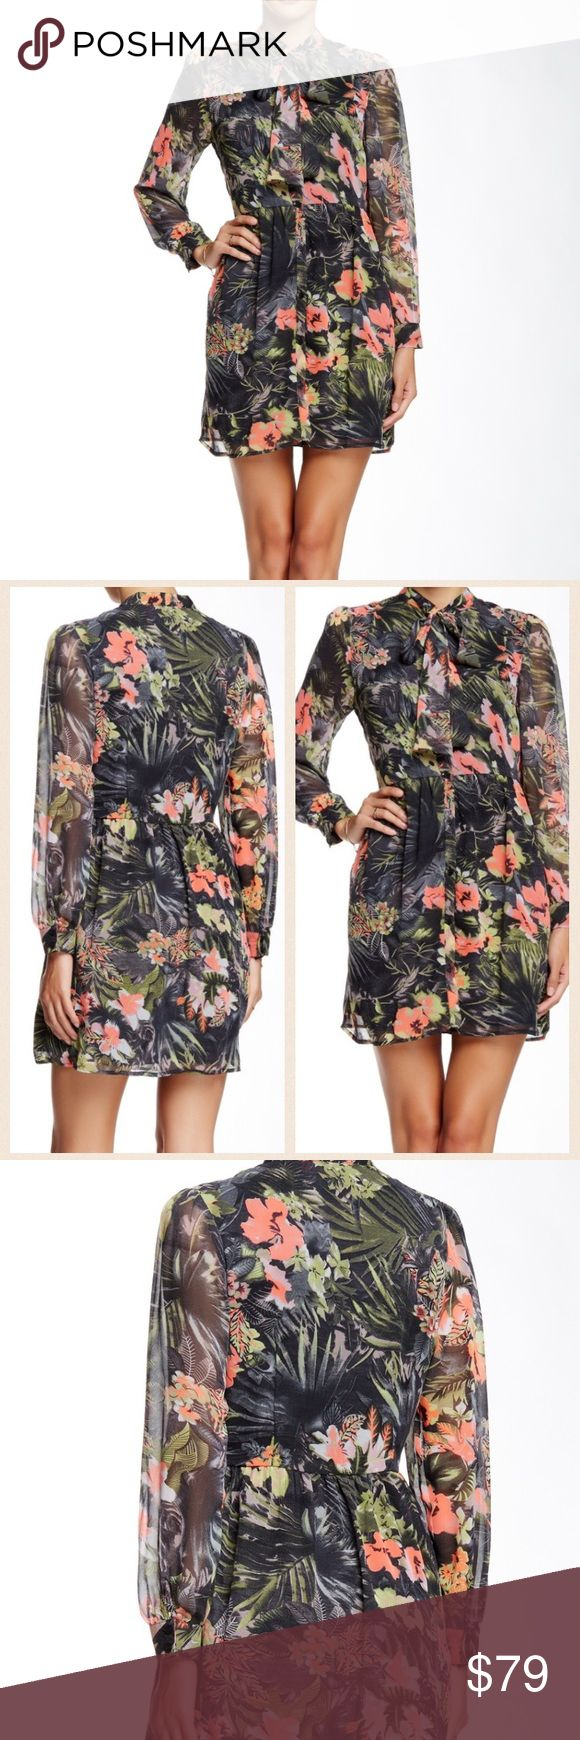 Tropical dress by W118 by Walter Baker Gorgeous tropical dress with tie at neck. Front buttons up. Very flowy fabric. Brand new with tag. W118 by Walter Baker Dresses